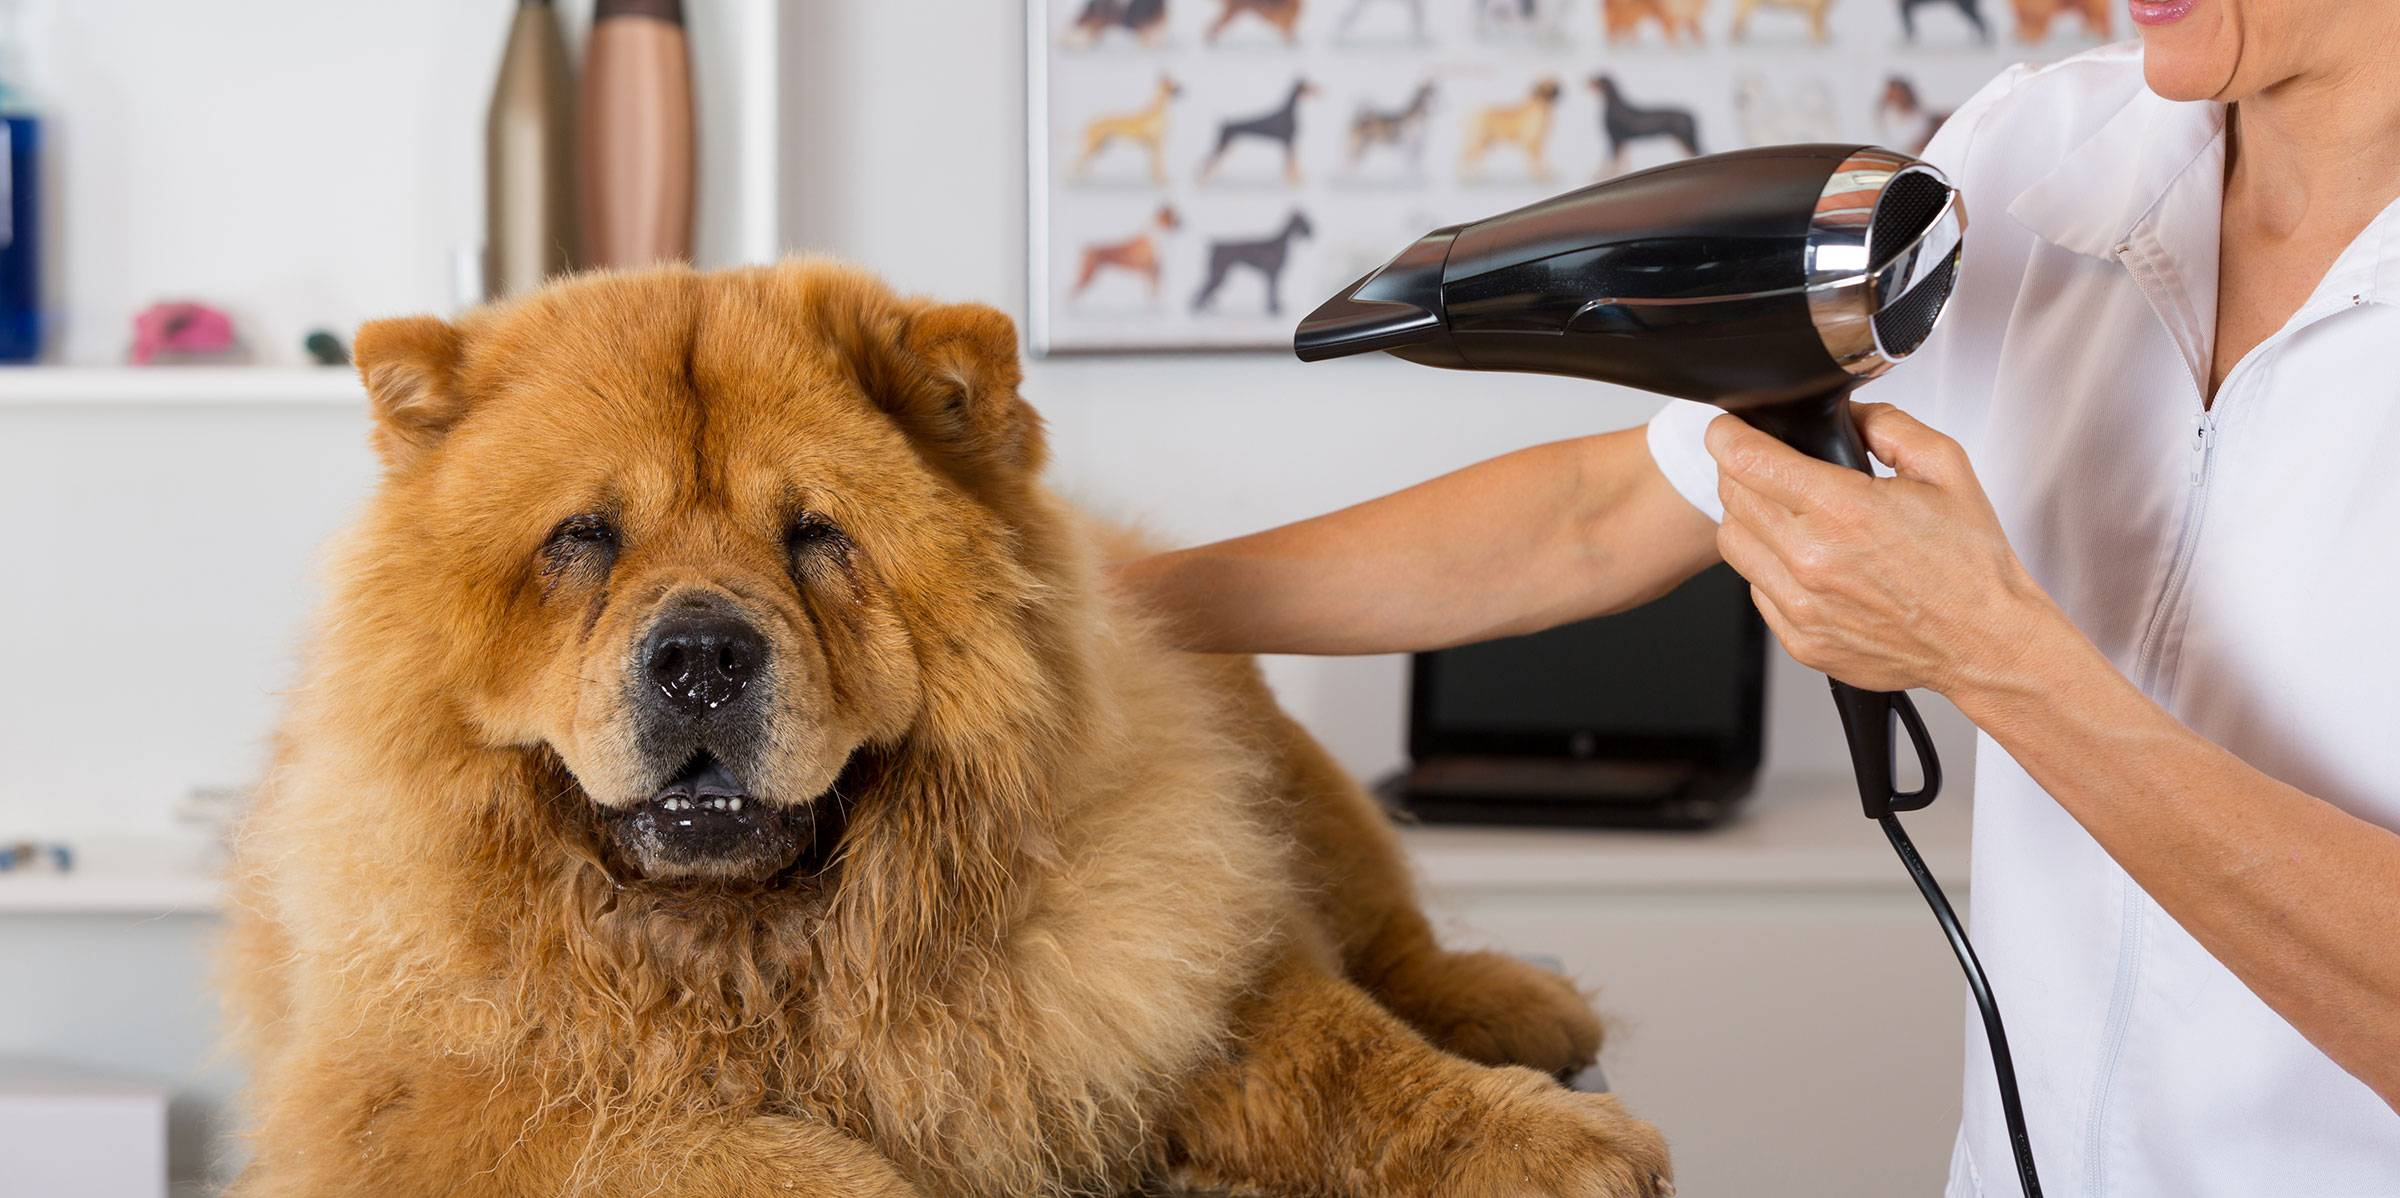 Pets Grooming Service For Dogs And Cats